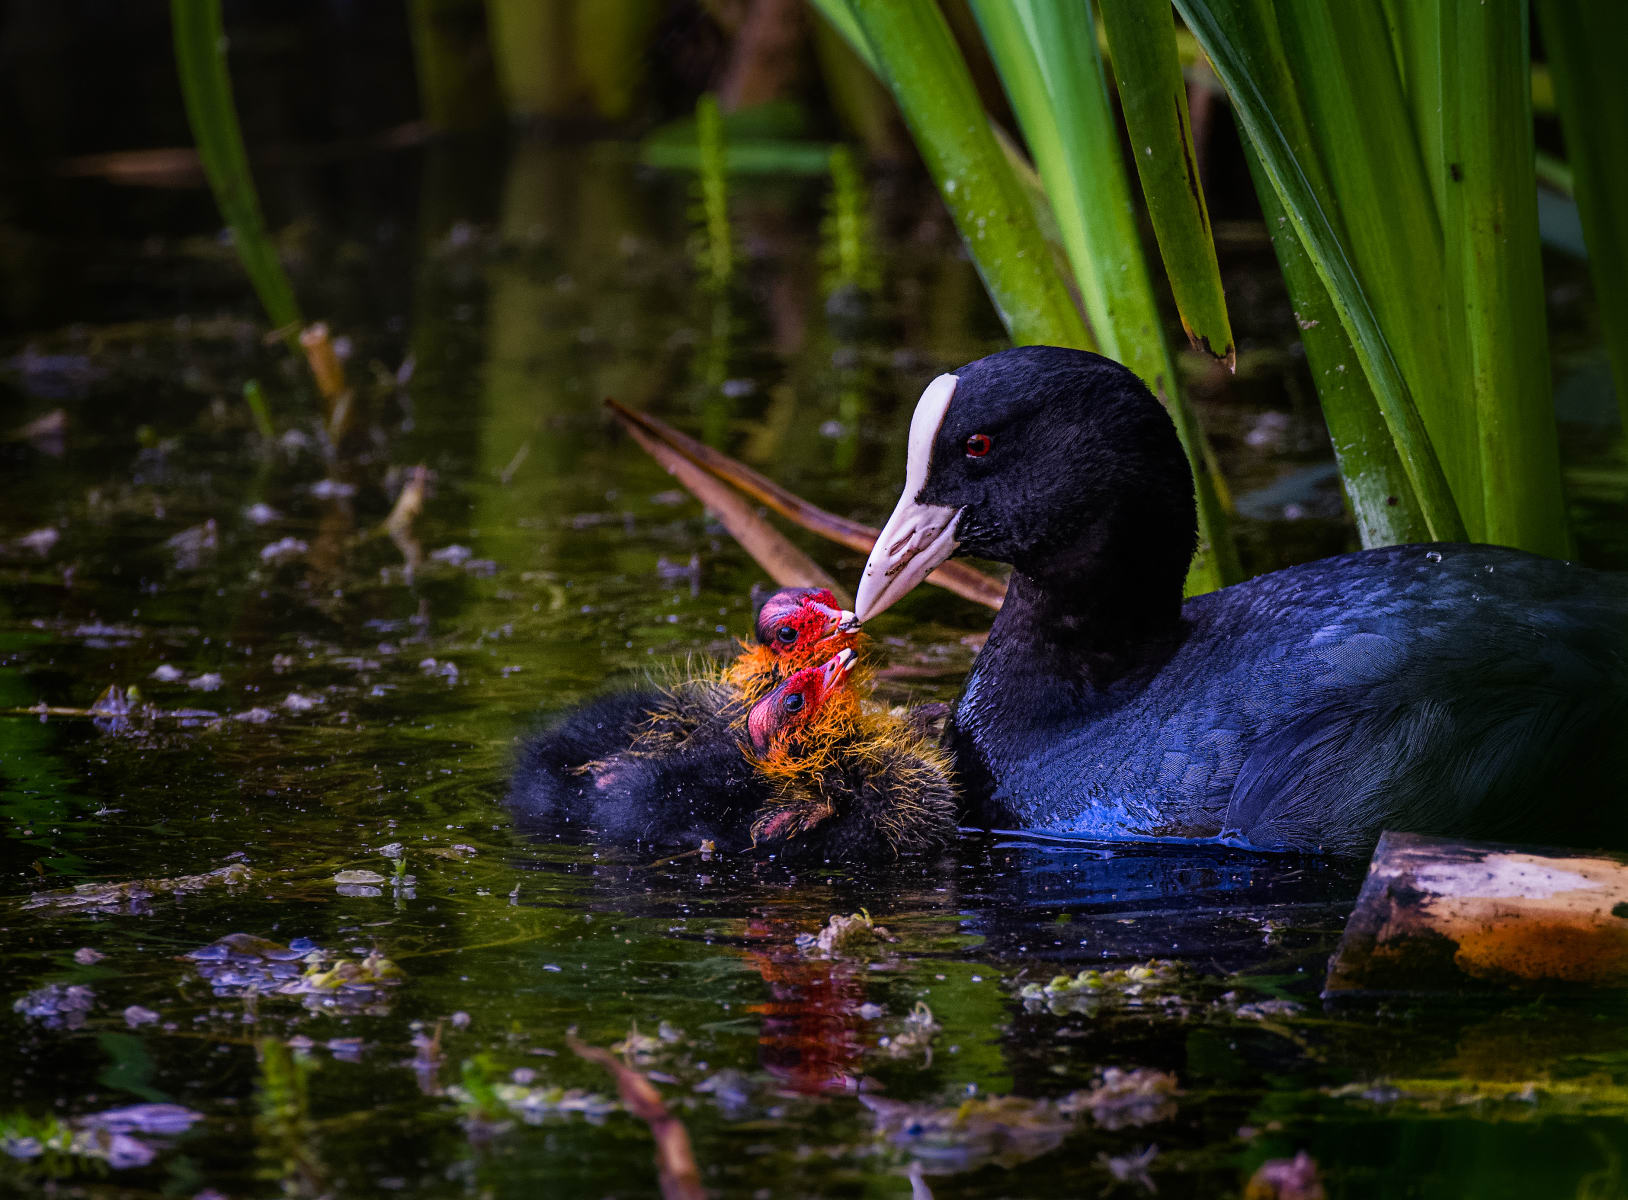 baby coot chicks begging for food